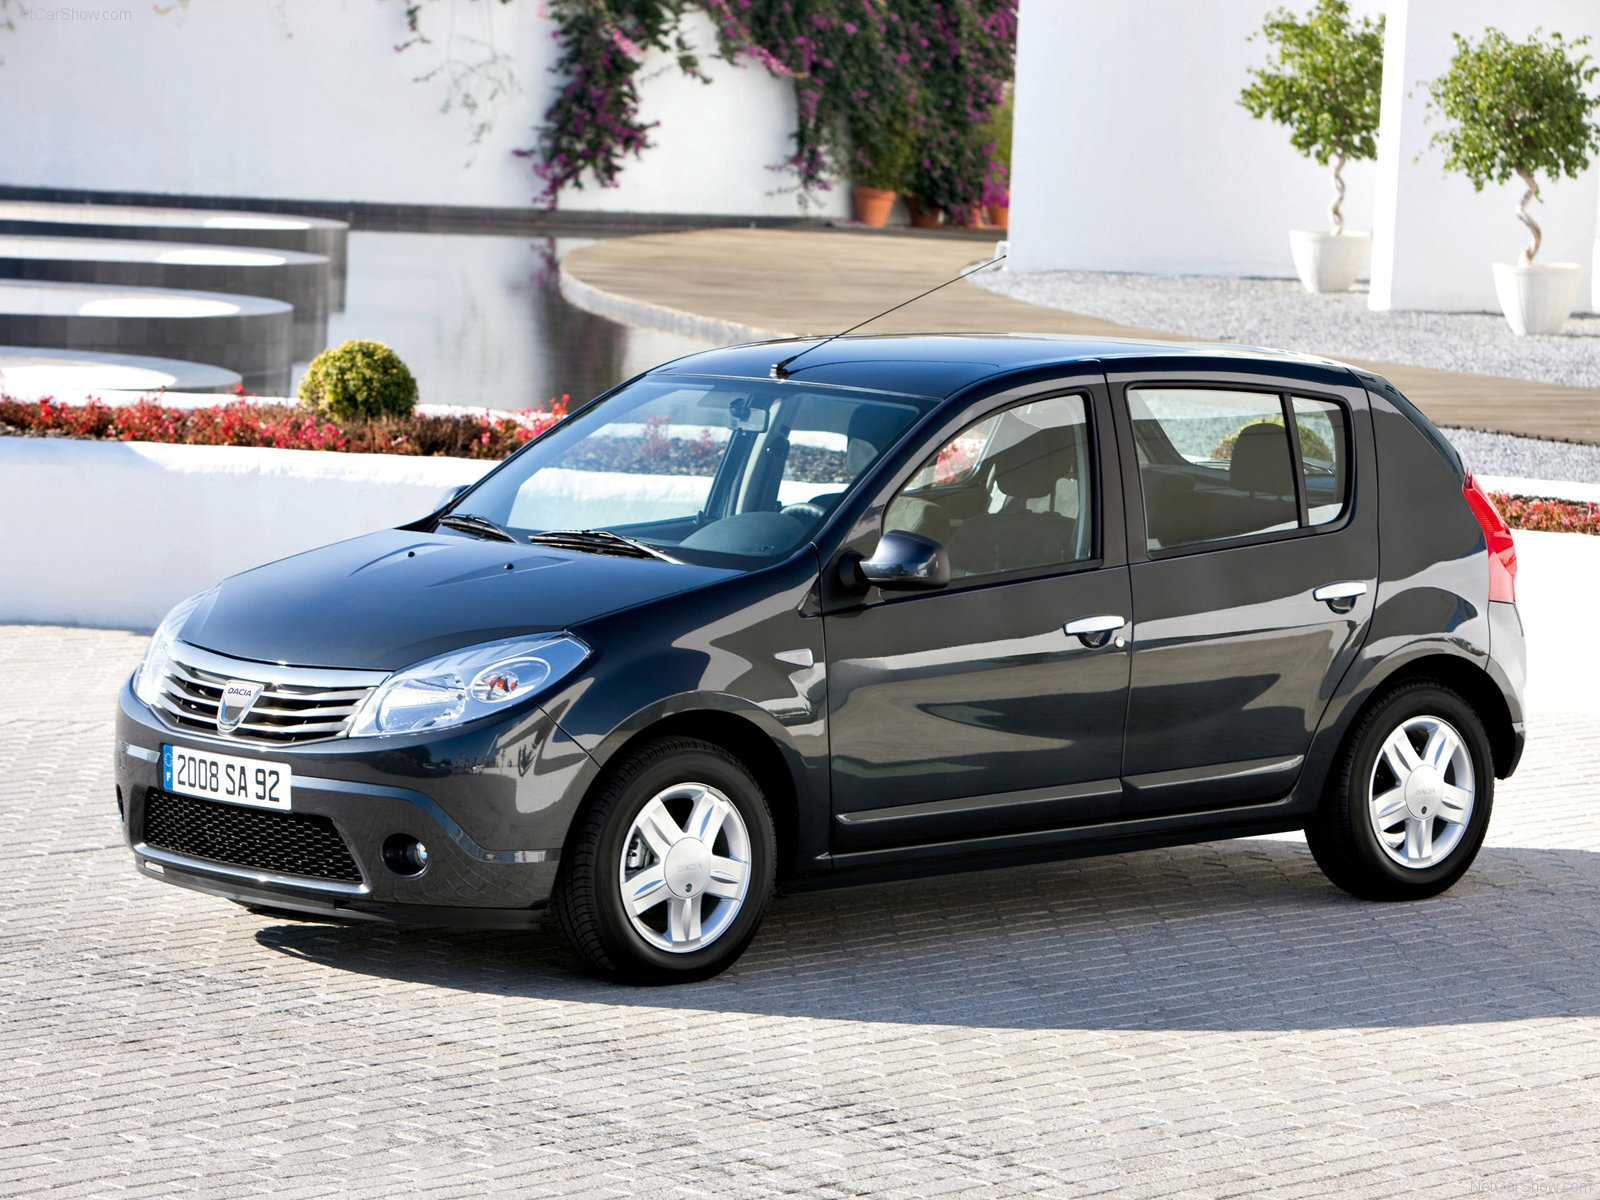 You can vote for this DACIA Sandero photo